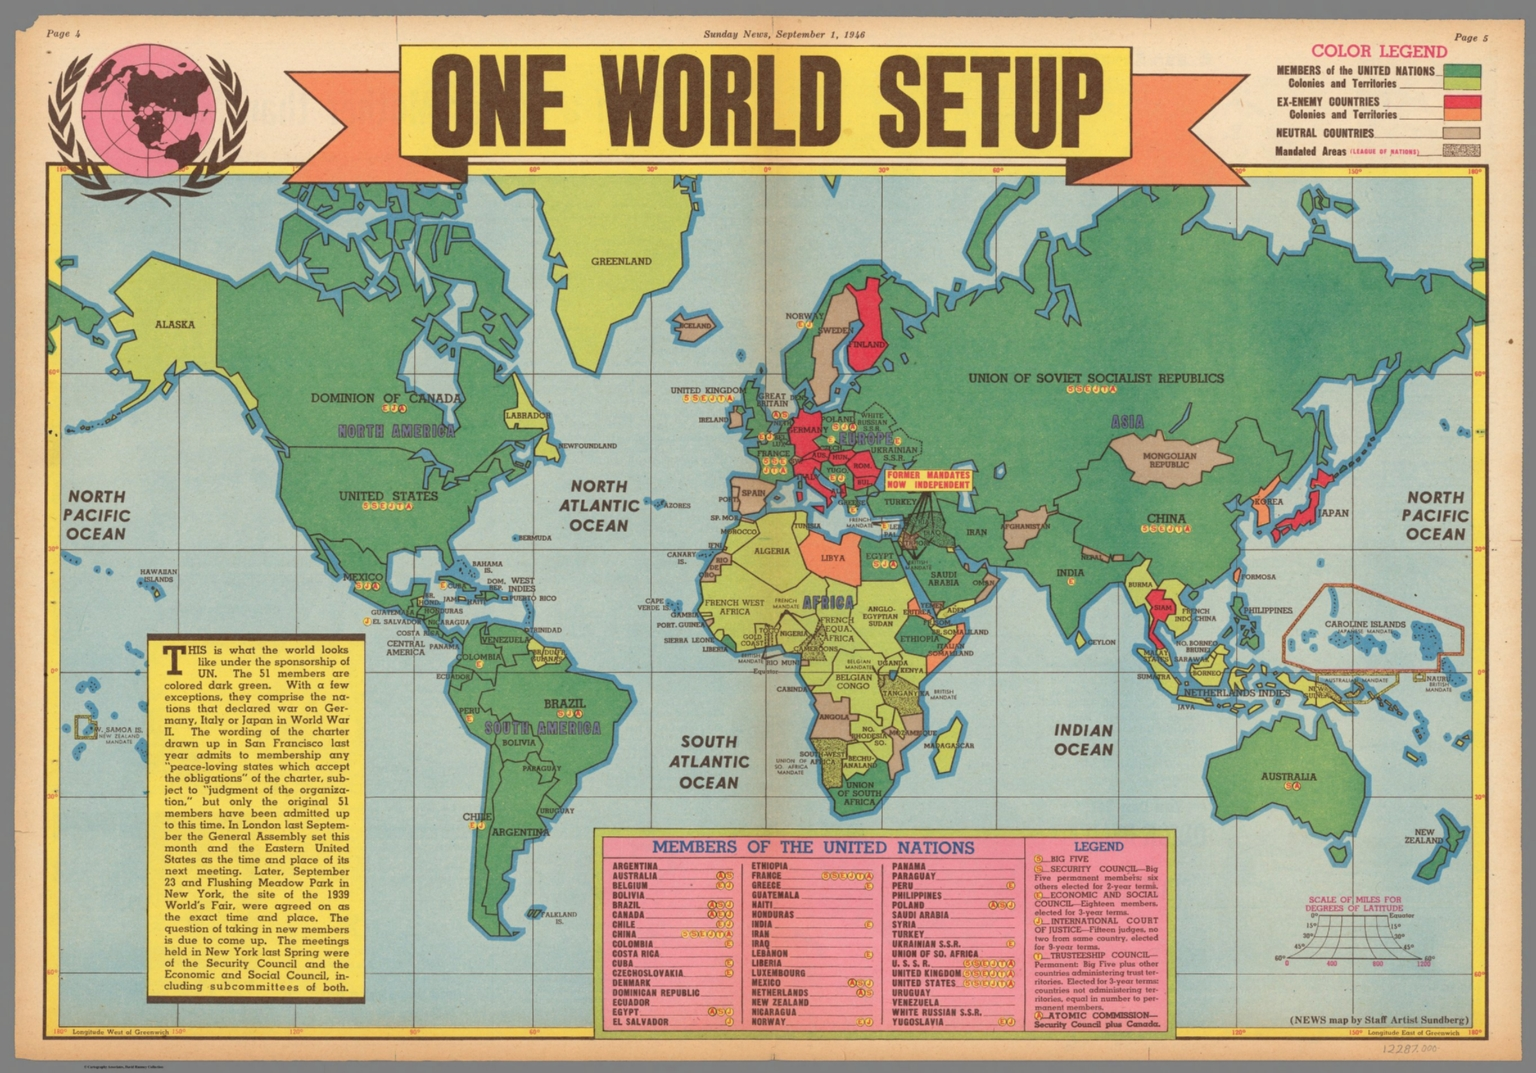 One World Setup. September 1, 1946. - David Rumsey Historical Map ...